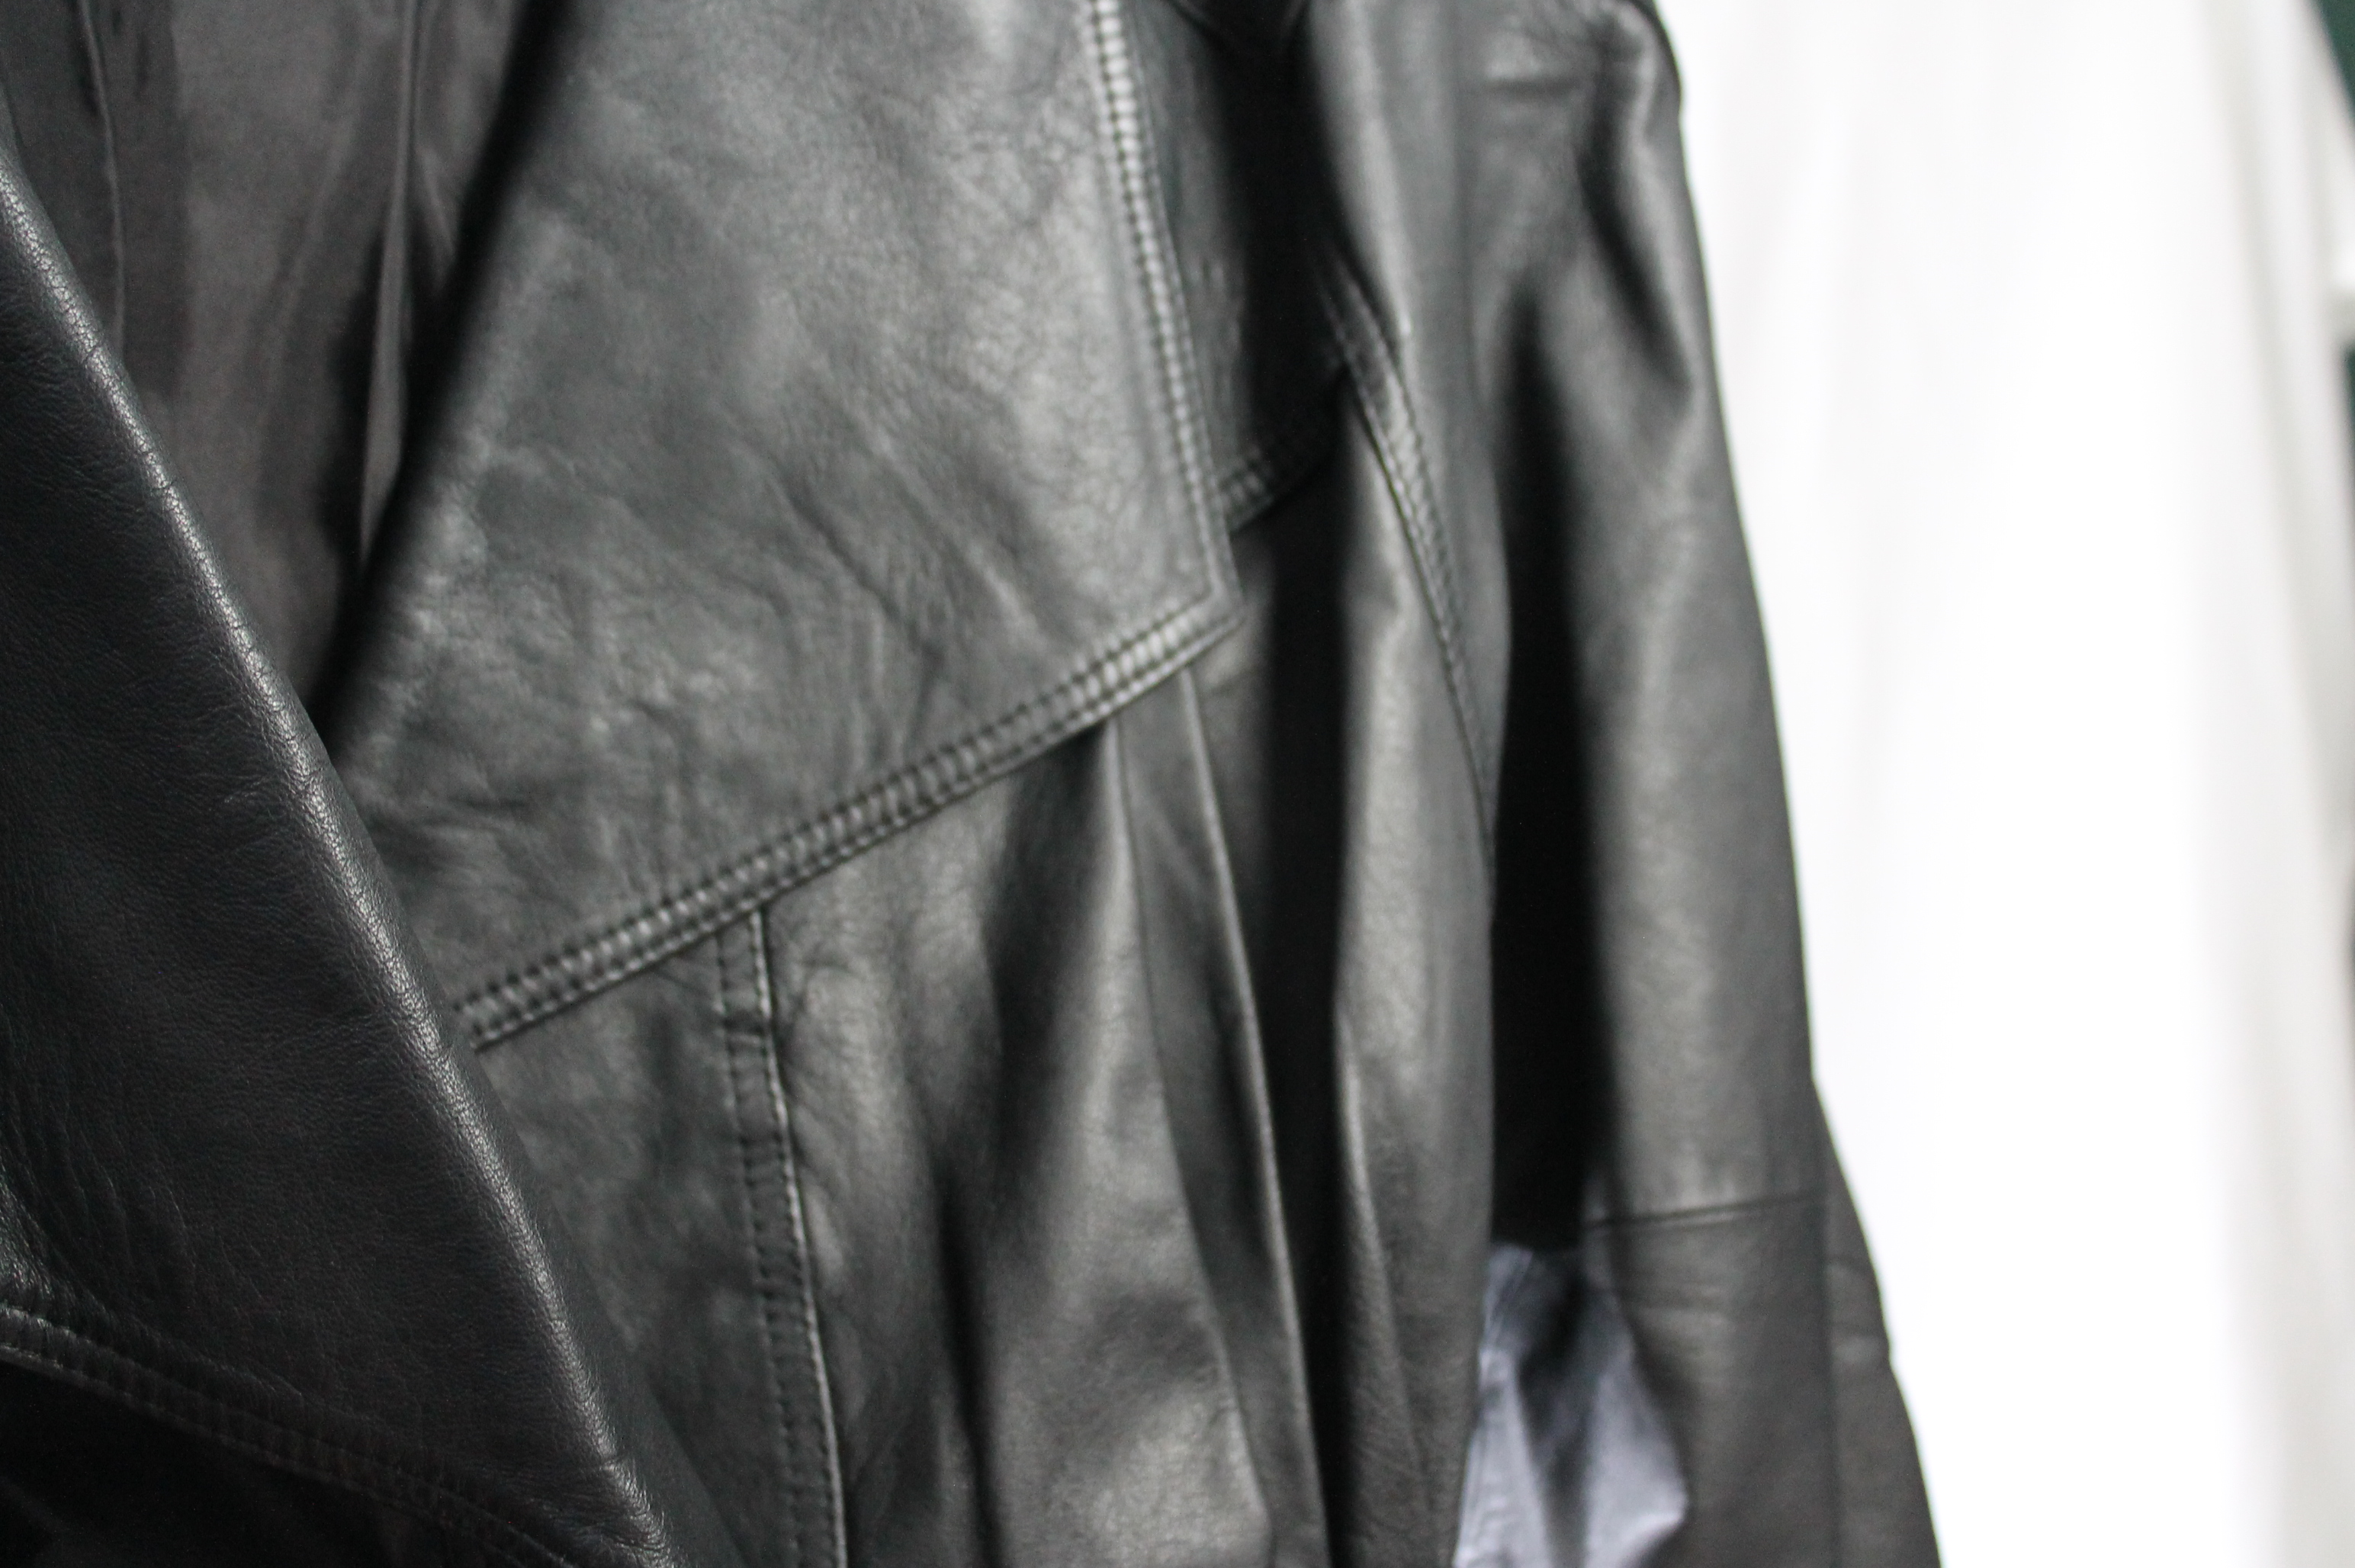 Leather size m - l